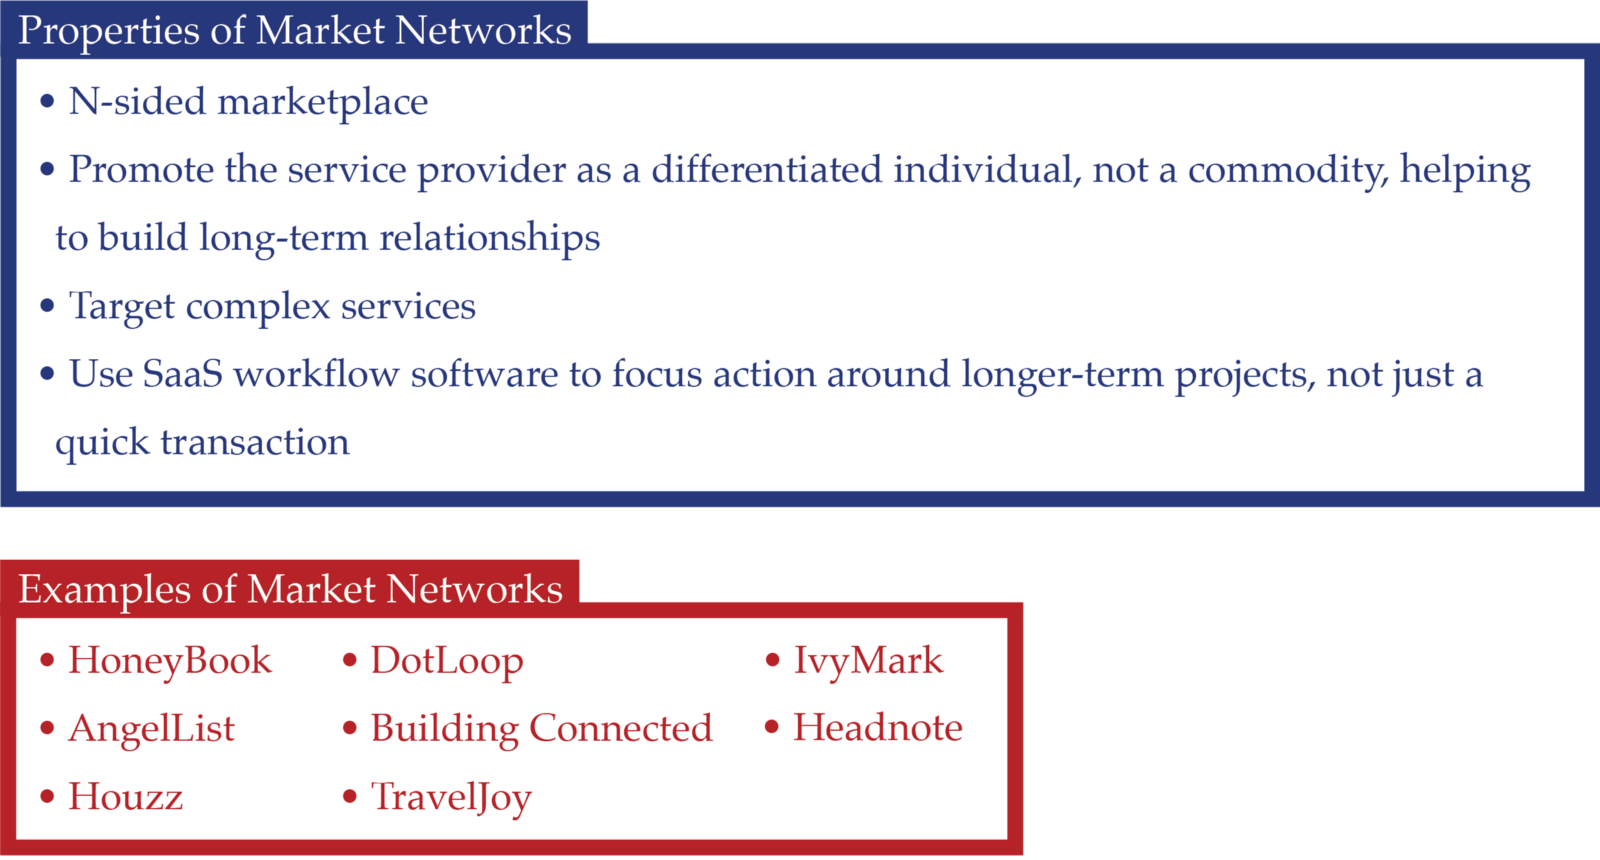 For a detailed description of Market Networks, see our article on the  subject.